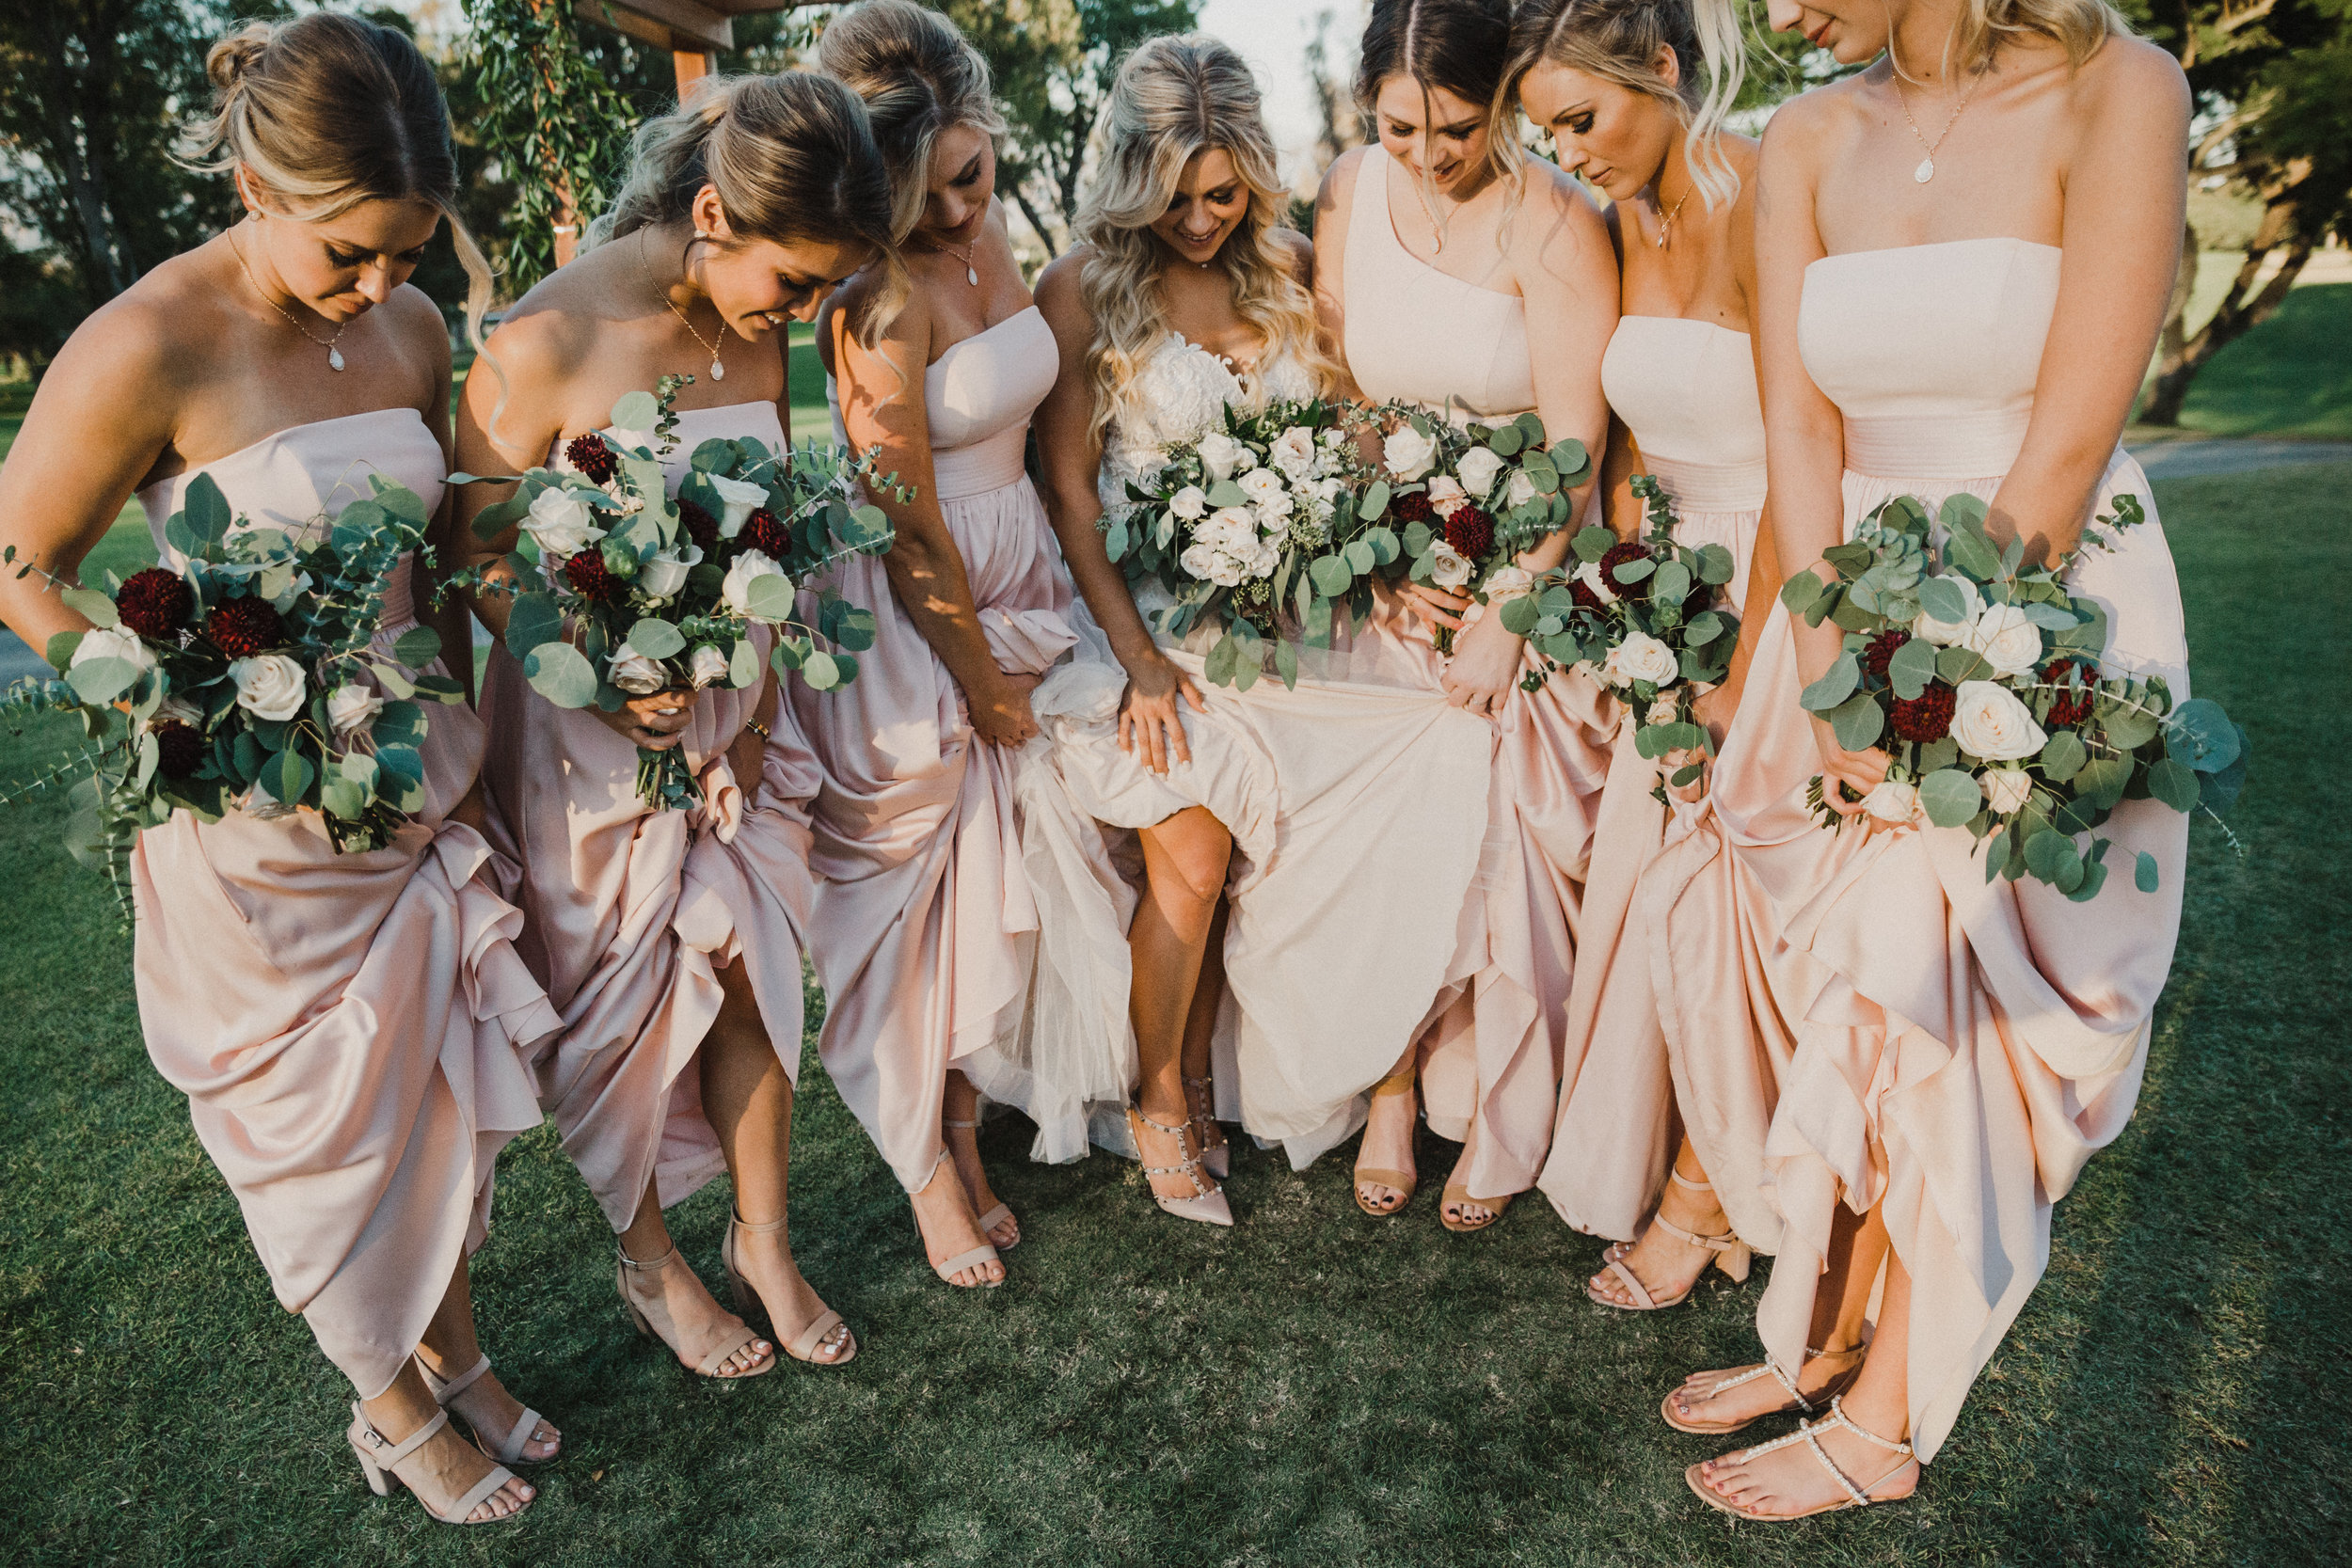 DianaLakePhoto-A+C-Wedding-Bridesmaids_67.jpg